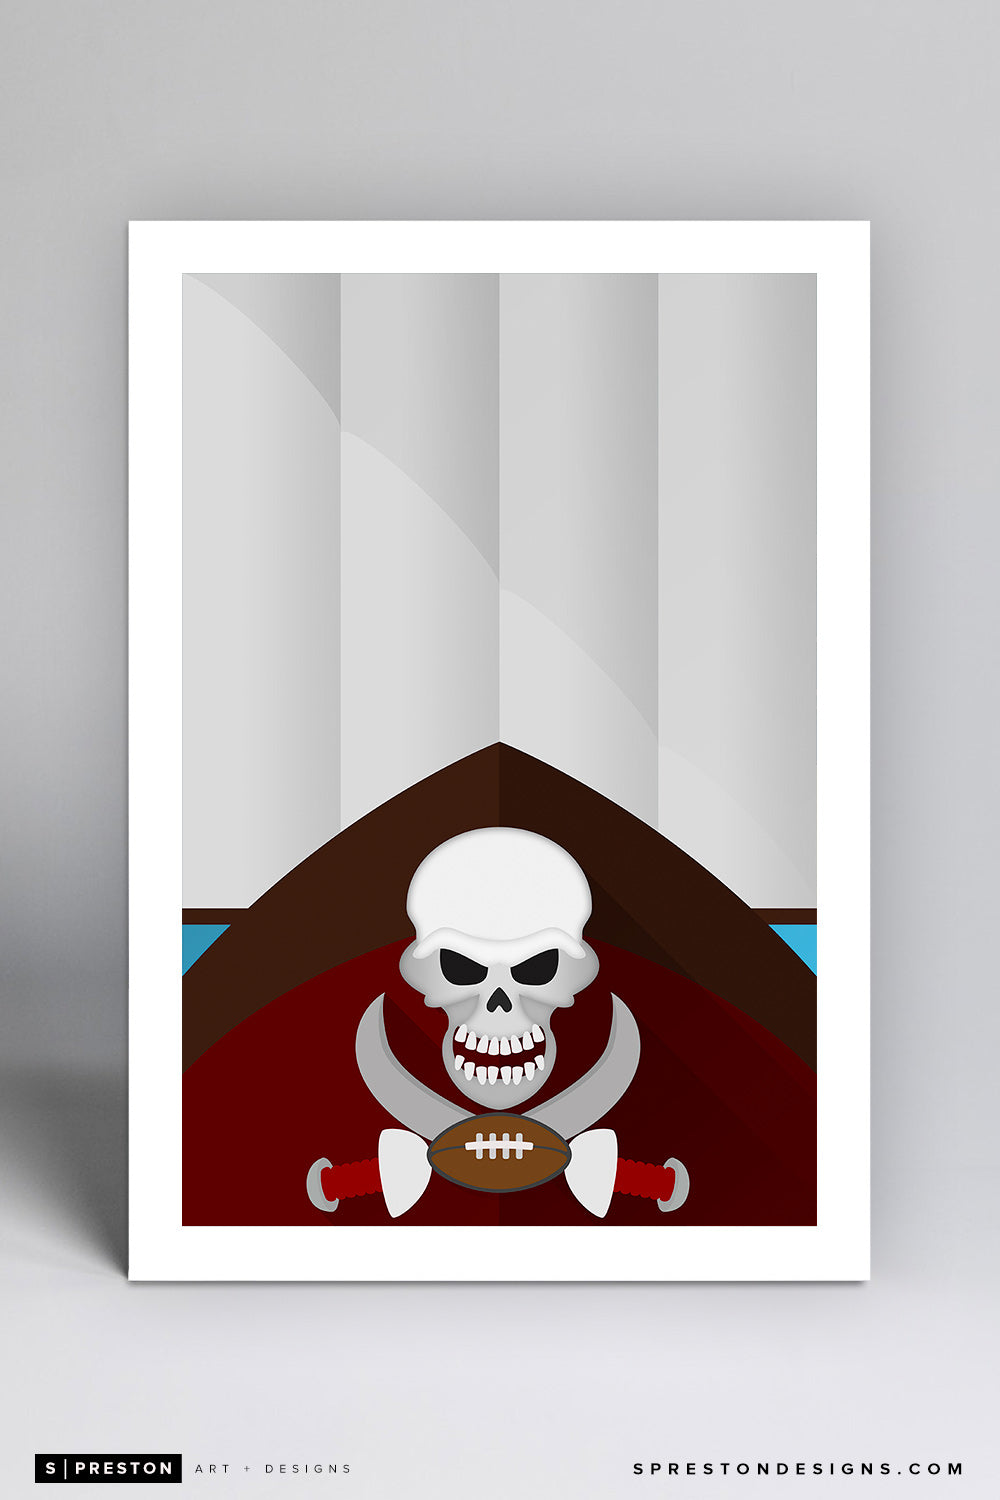 Minimalist Raymond James Stadium Art Print - Tampa Bay Buccaneers - S. Preston Art + Designs